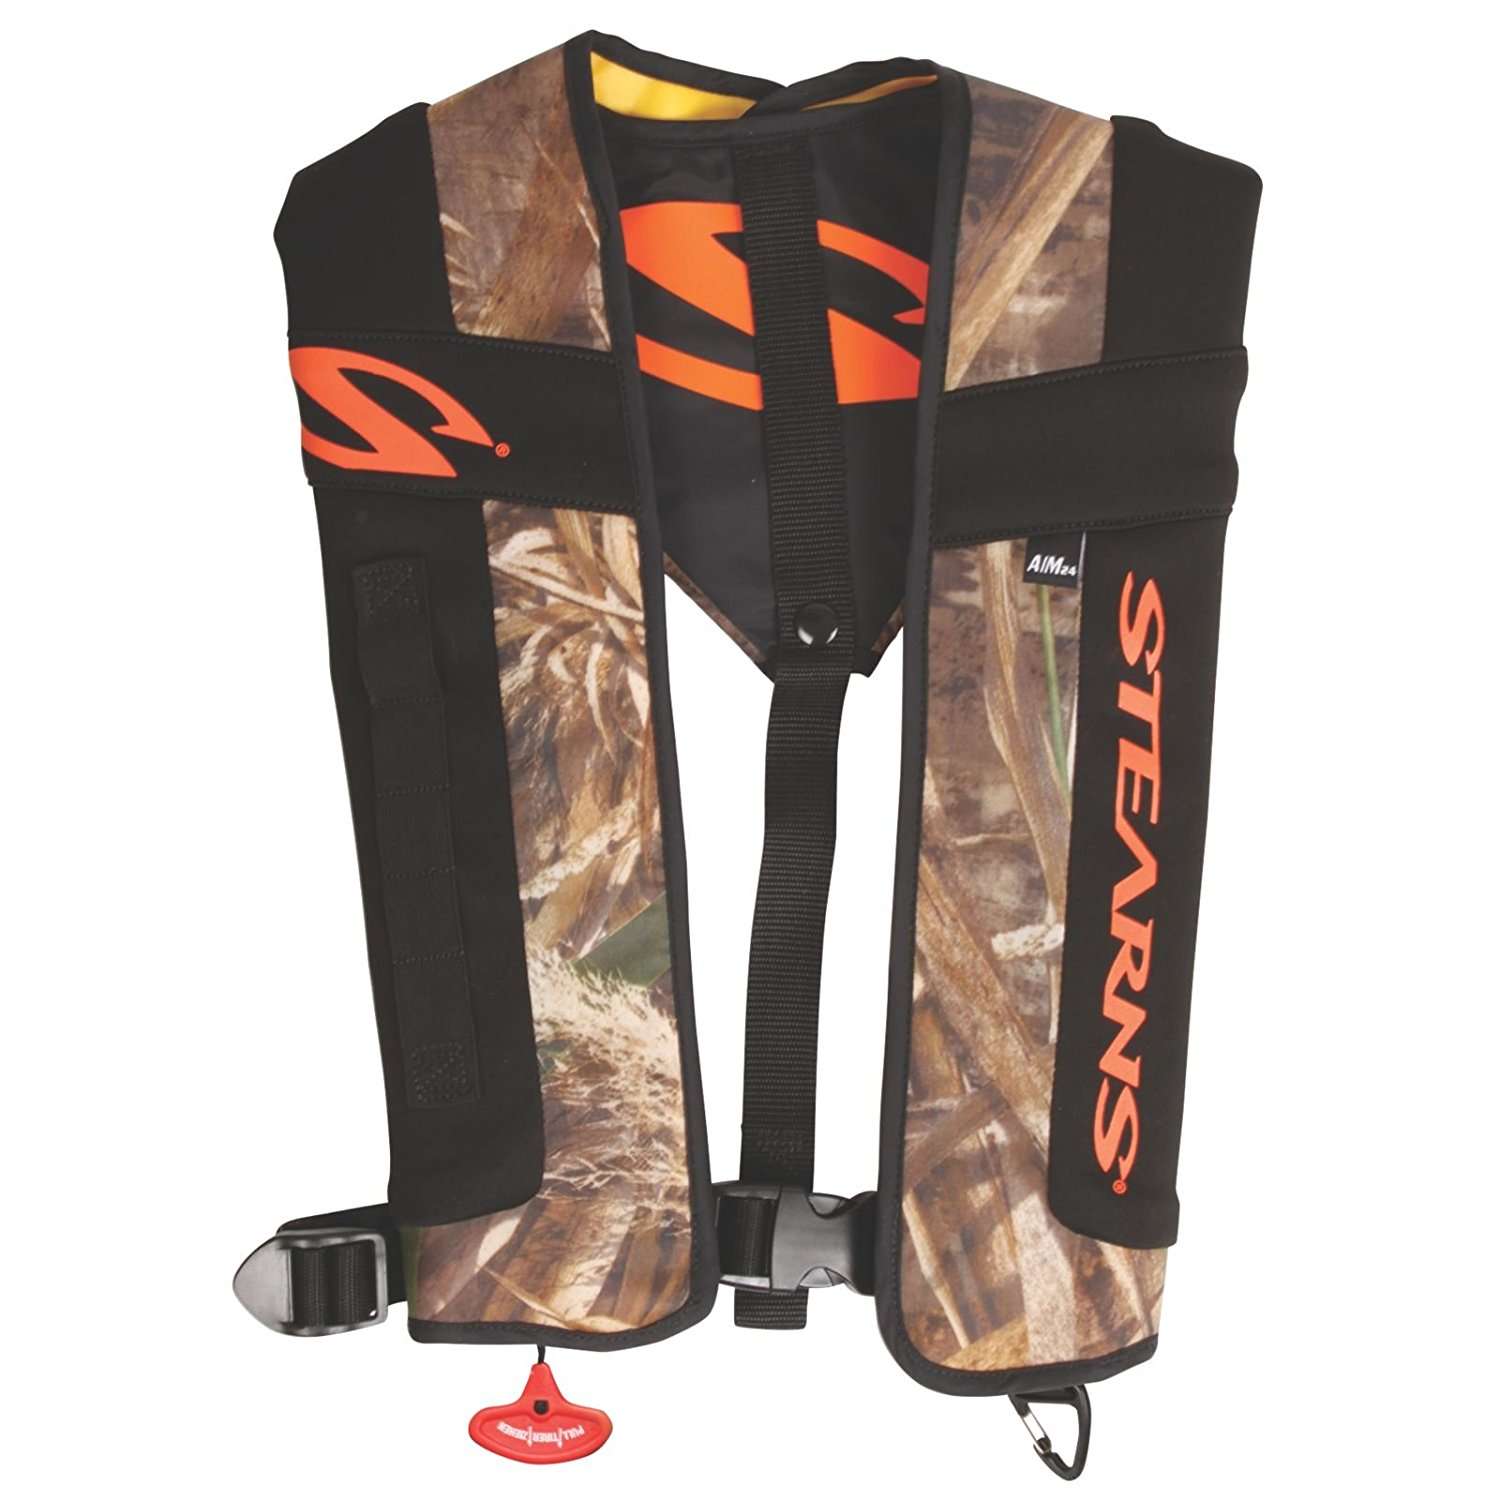 Stearns FastPak Sportsman 24 Automatic/Manual Inflatable Life Jacket